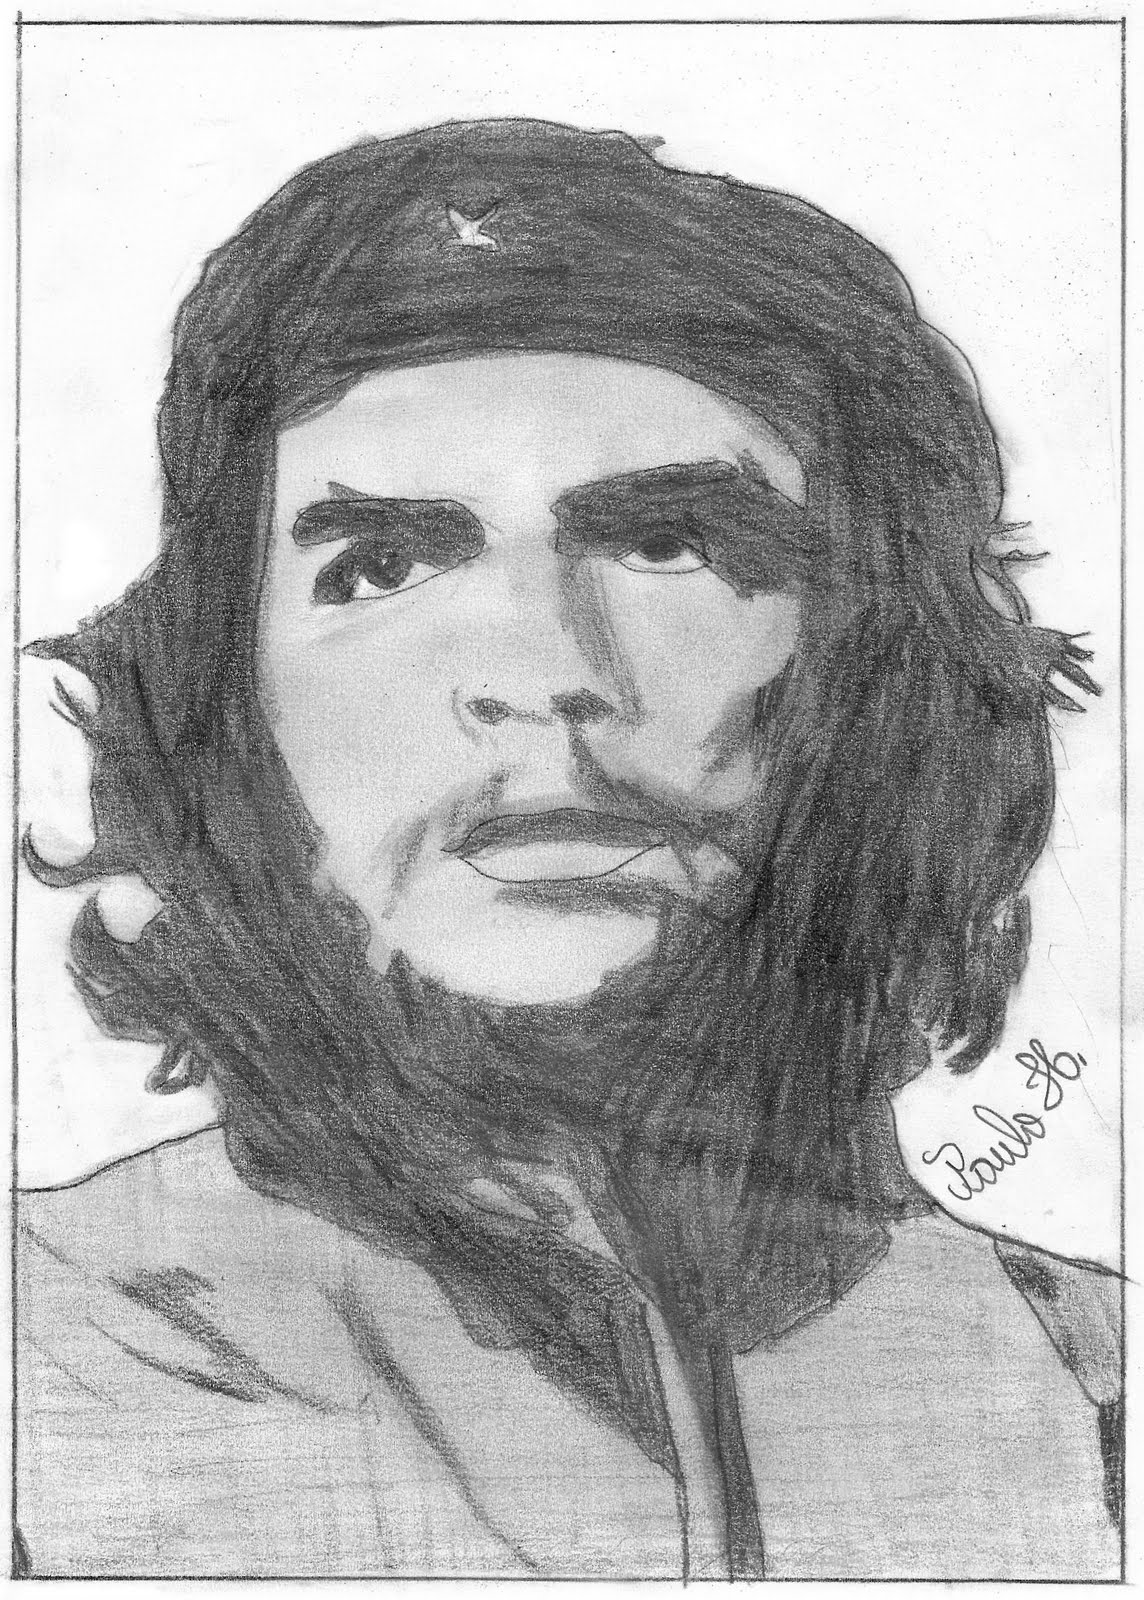 ernesto che guevara Ernesto 'che' guevara - 1928-1967 - a website dedicated to promoting the ideas and accomplishments of che guevara and the global network of che guevara supporters.